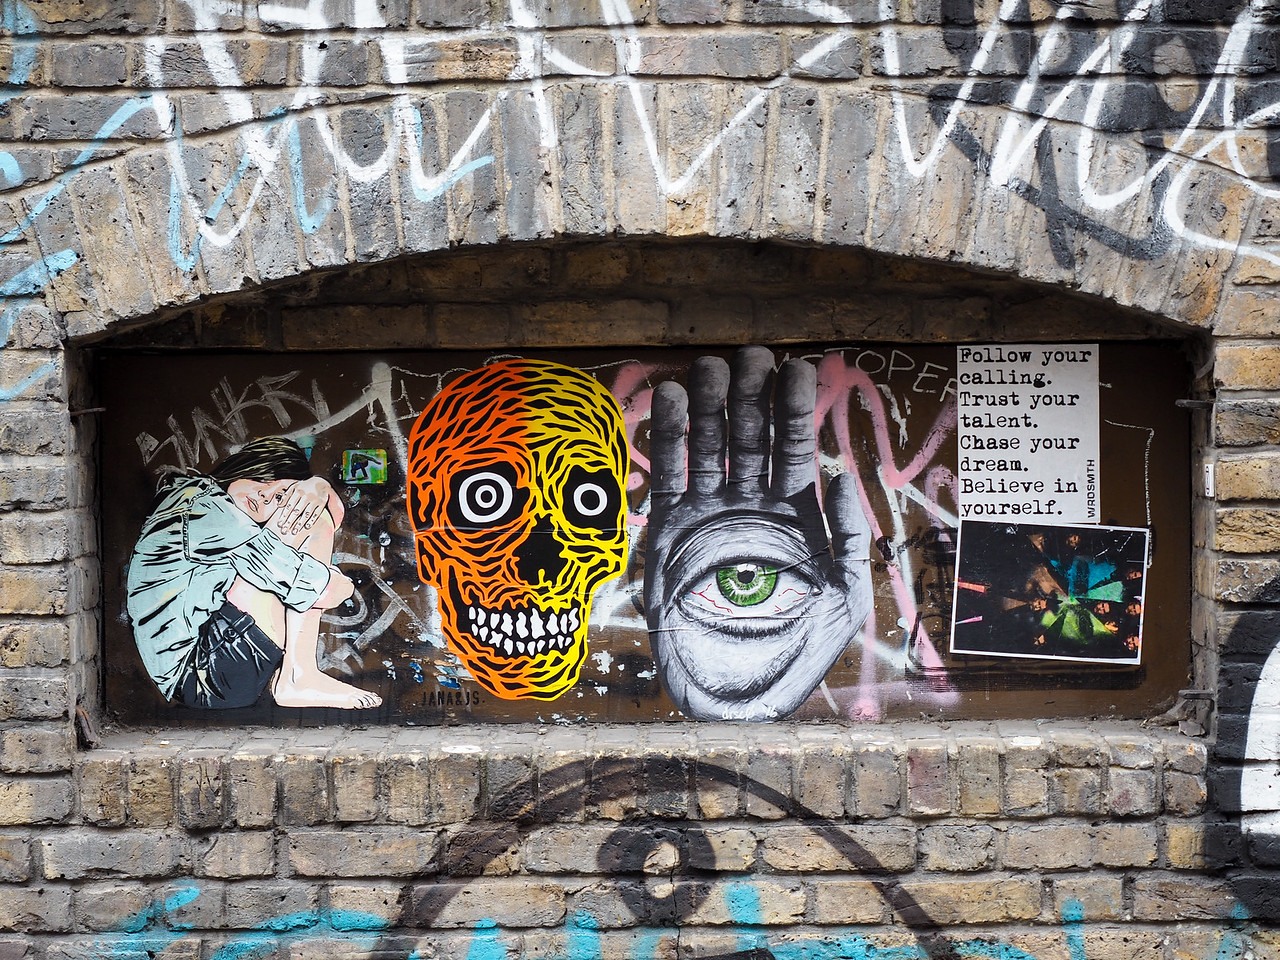 Street art in London's East End